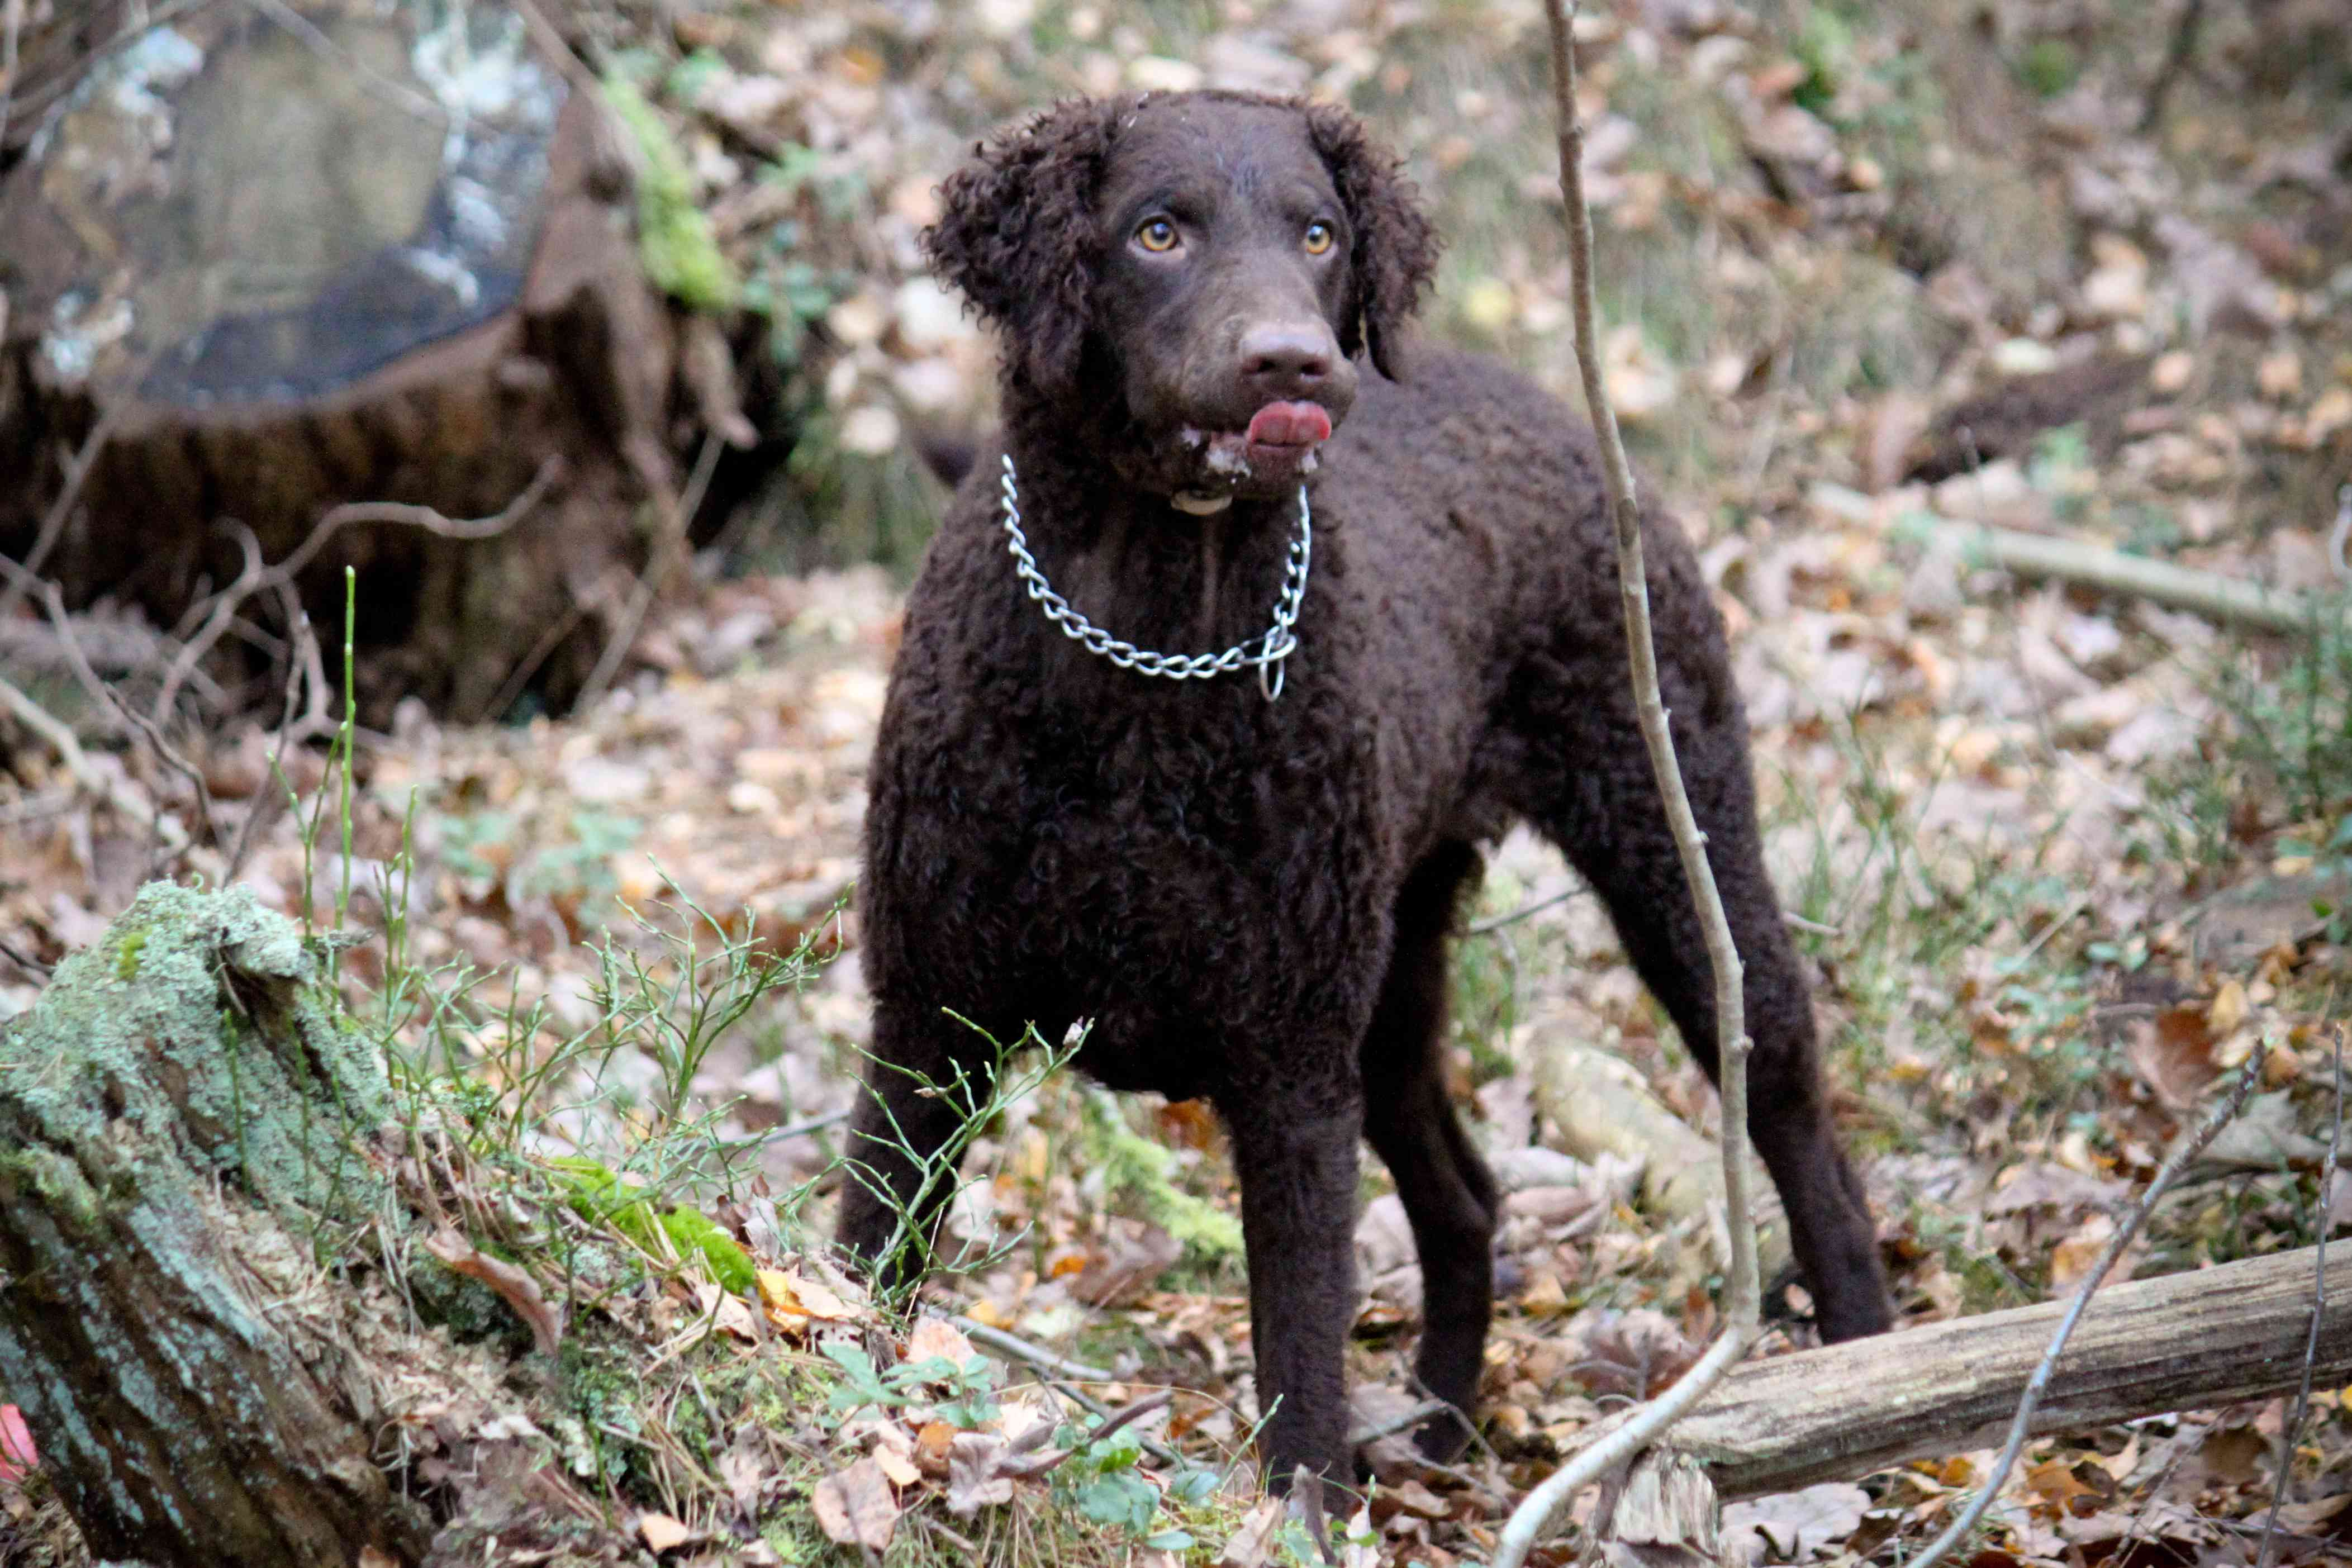 chocolate curly coated lab stands in woods surrounded by branches and fallen leaves